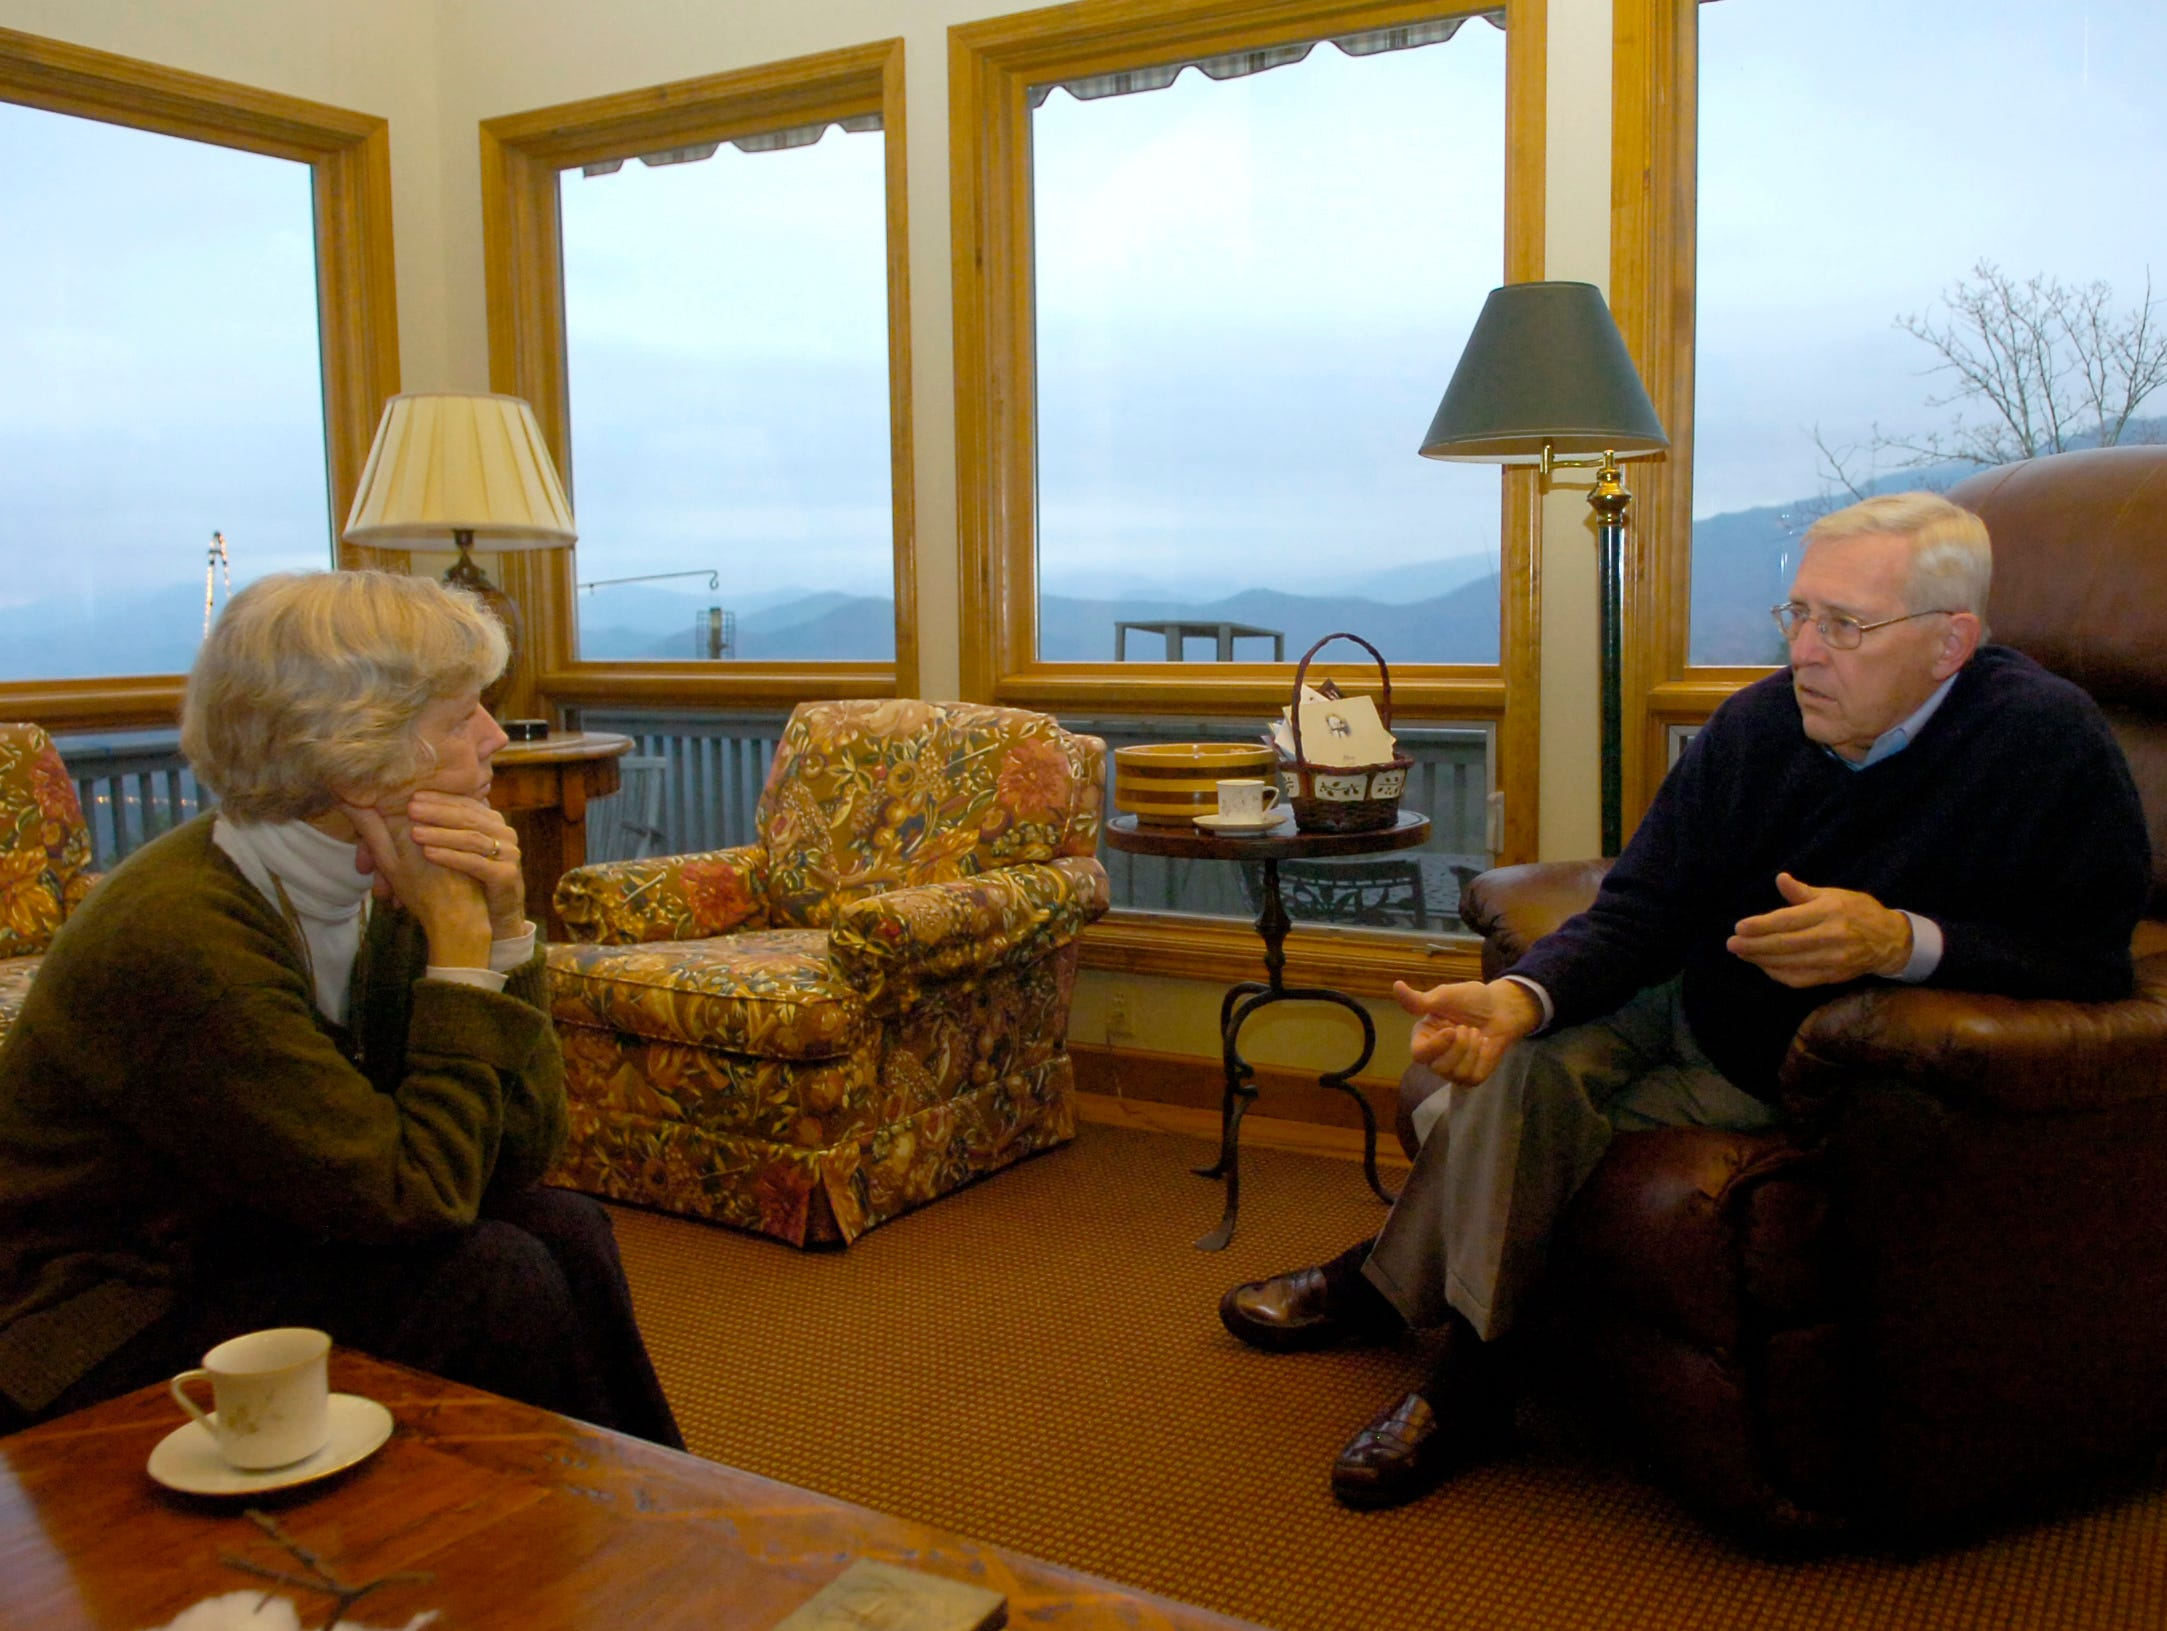 Former Tennessee Governor Don Sundquist talks with his wife Martha at their home in Laurel Valley, located in Townsend, TN. Sundquist served as governor from 1995 to 2002.